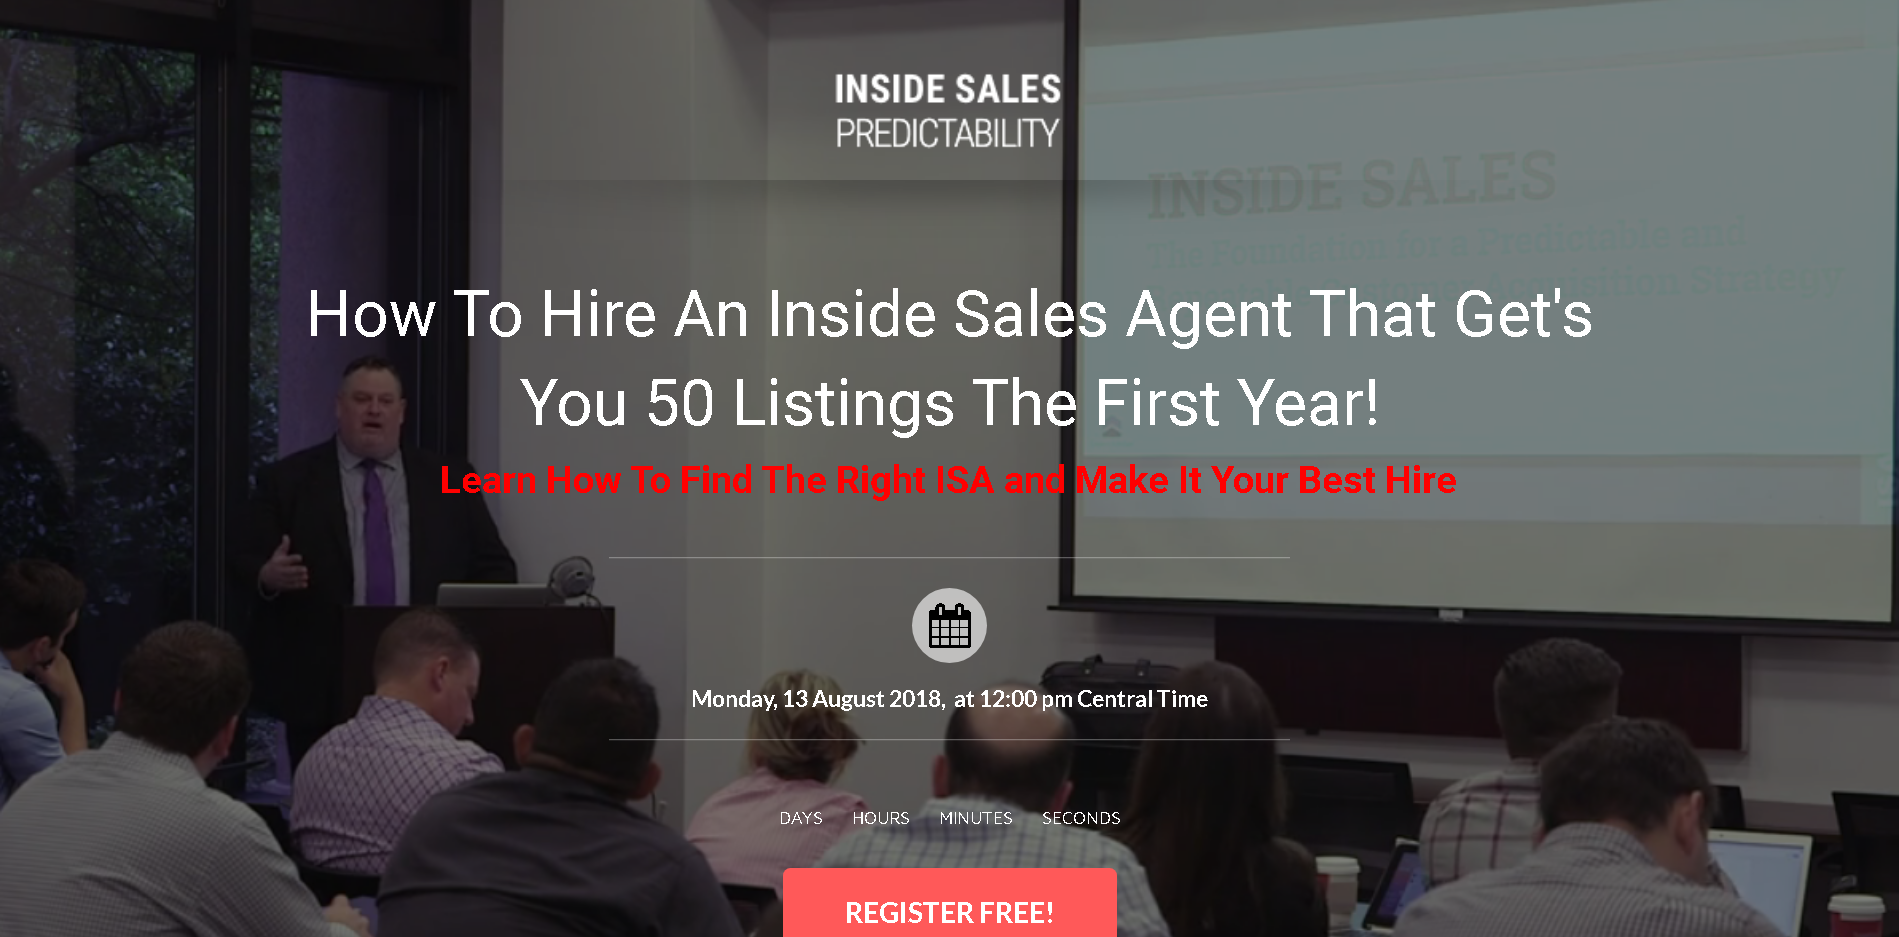 How To Hire An Inside Sales Agent